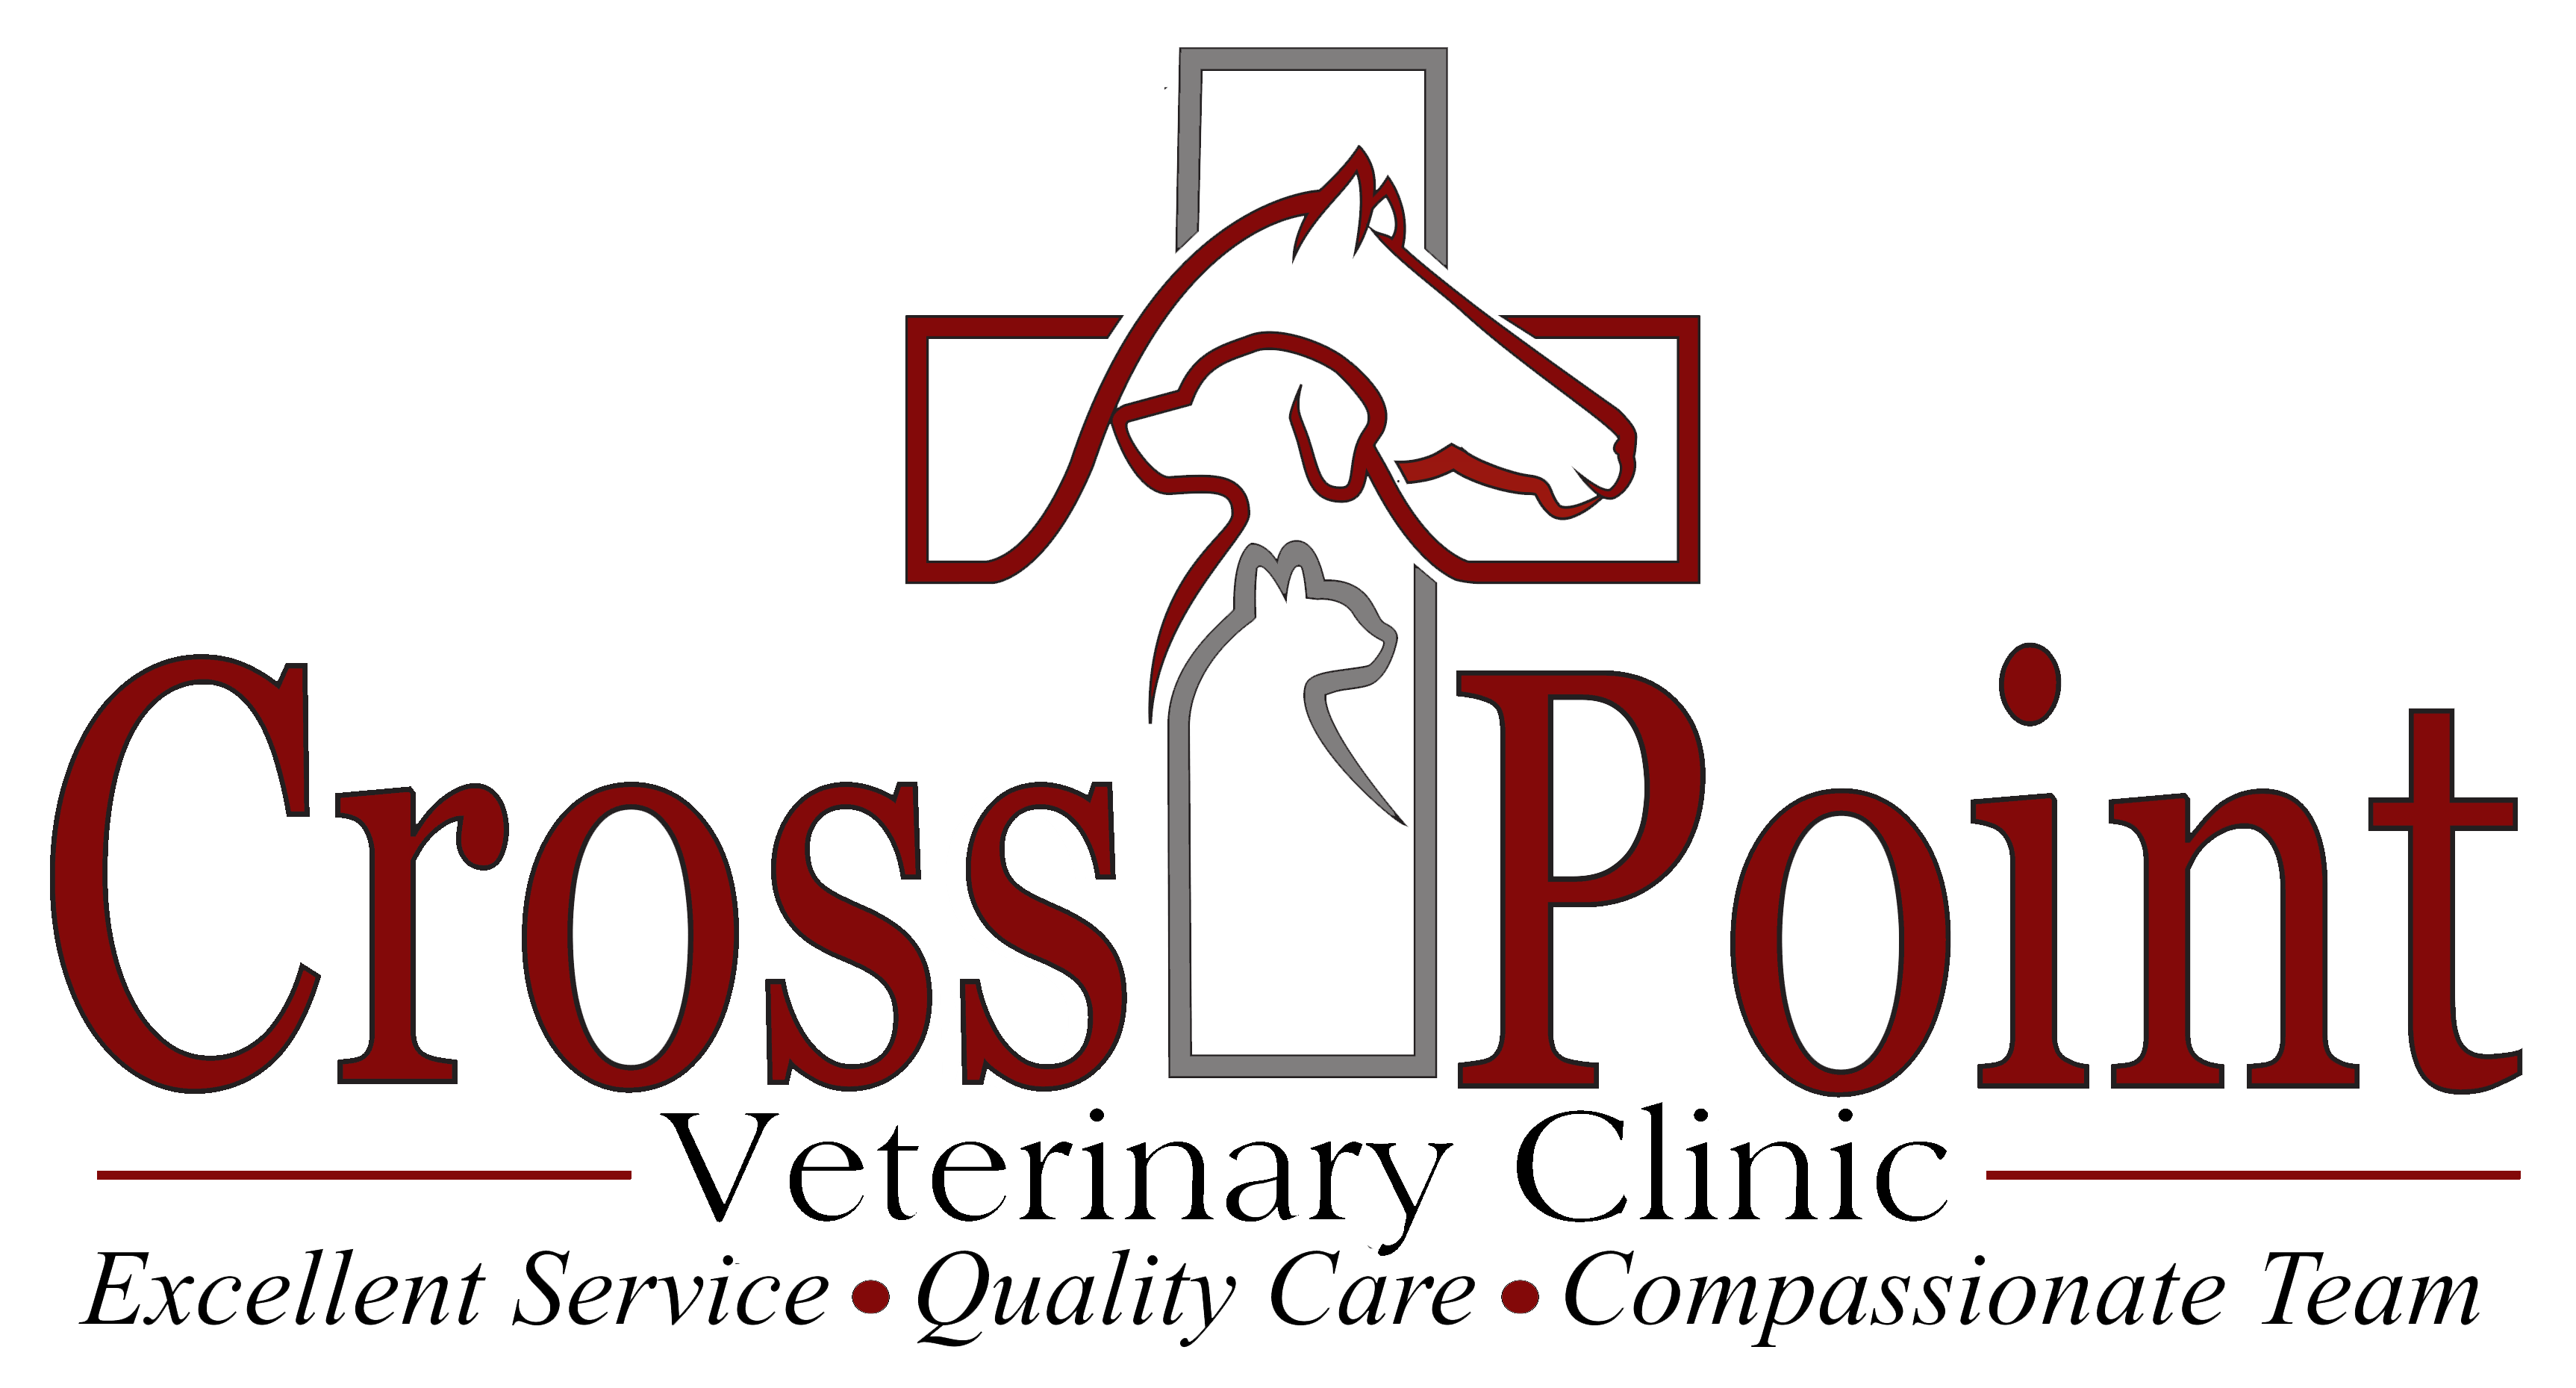 Cross Point Veterinary Clinic